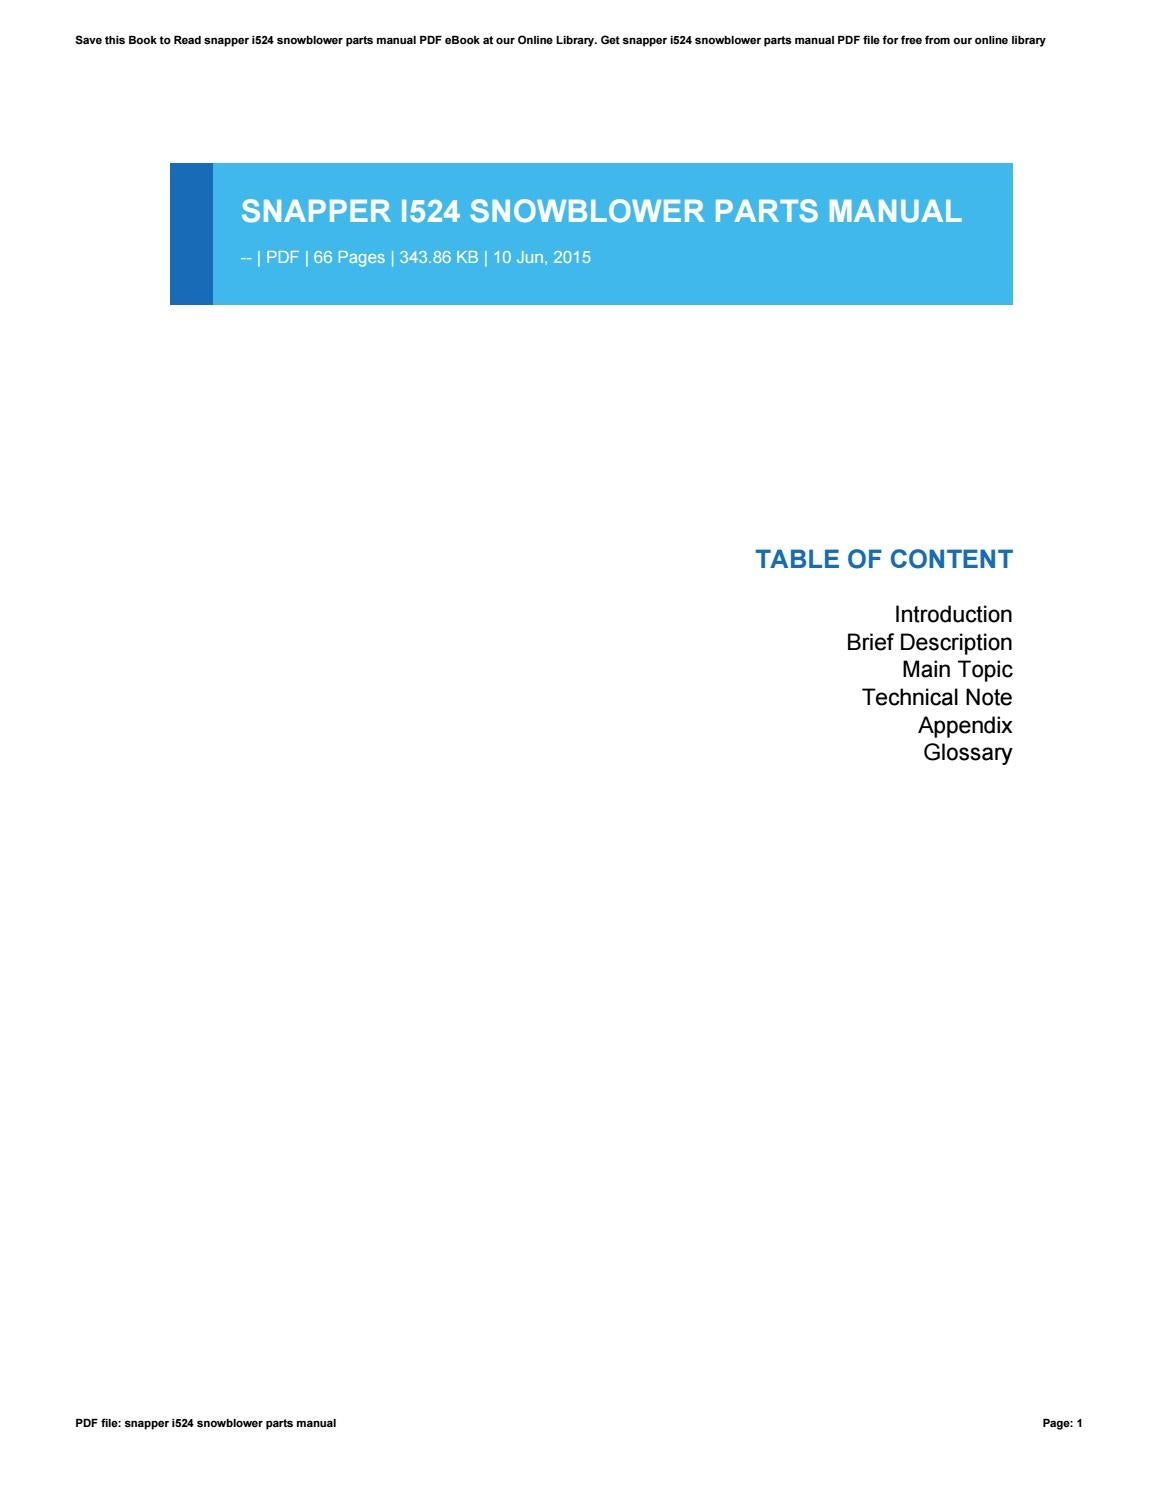 Snapper I524 Snowblower Parts Manual By N4200 Issuu Diagram